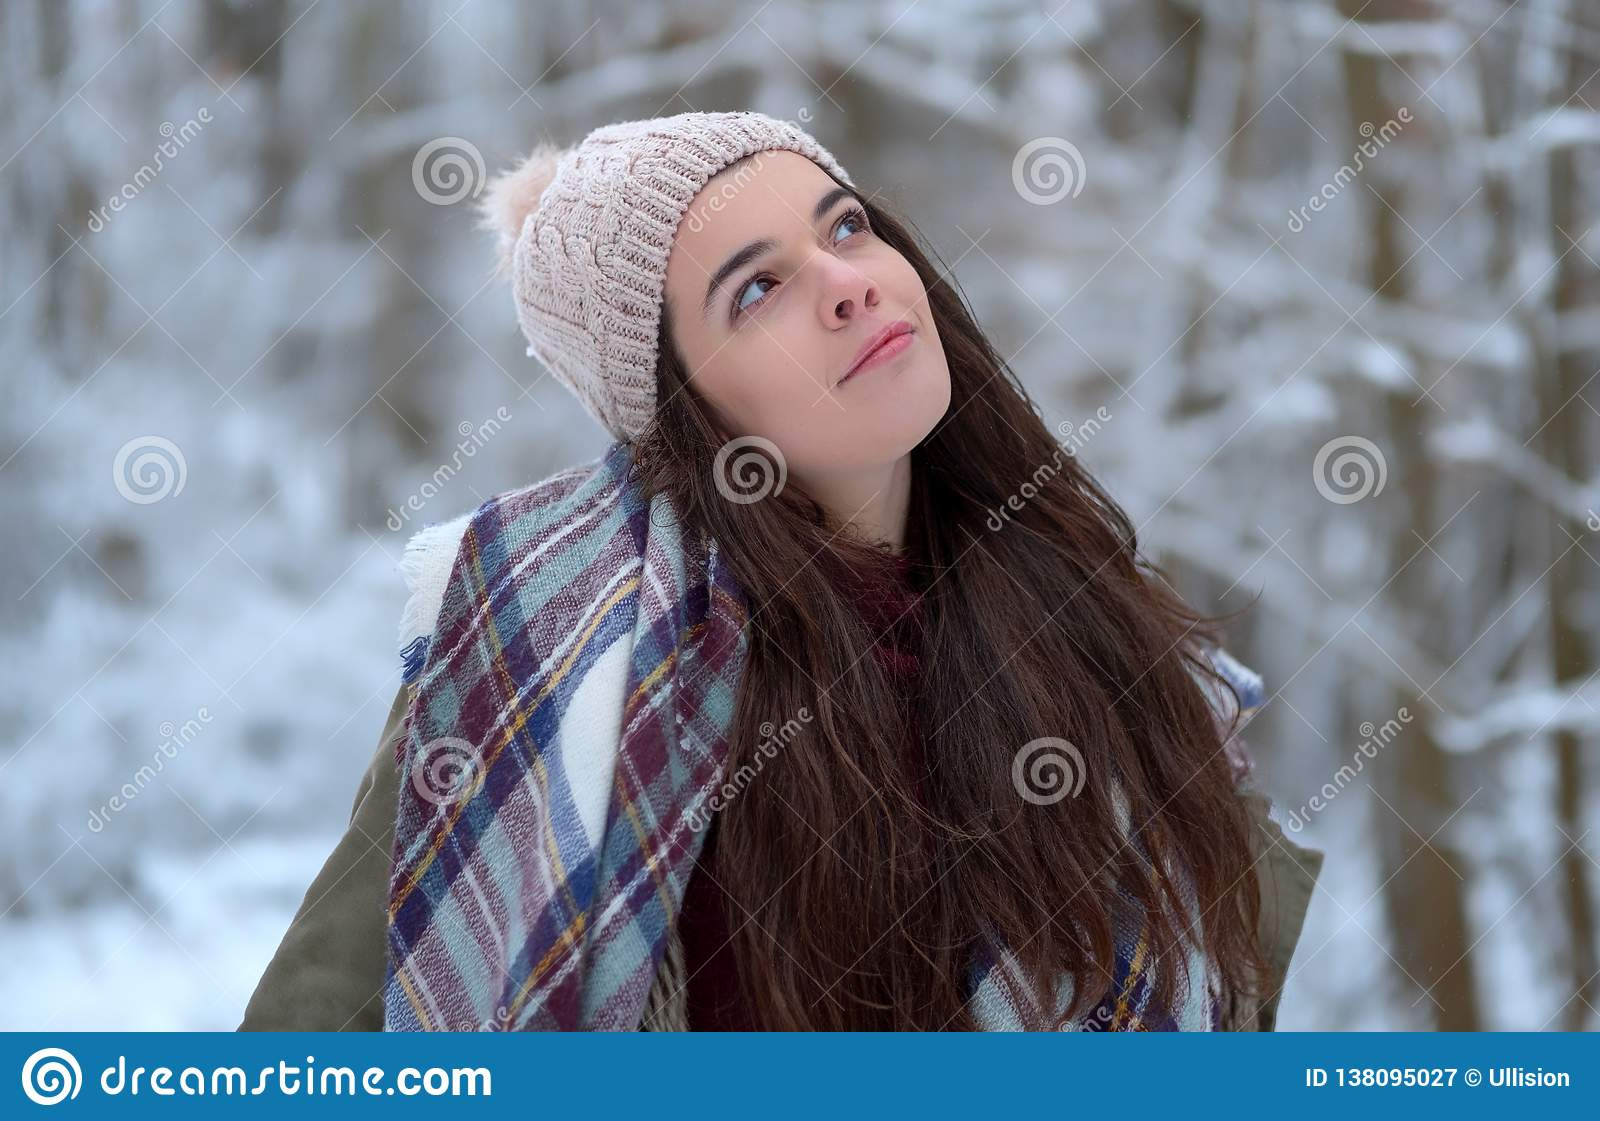 Beautiful young girl portrait with scarf, joyful model cold in winter park. Happy enjoying the nature